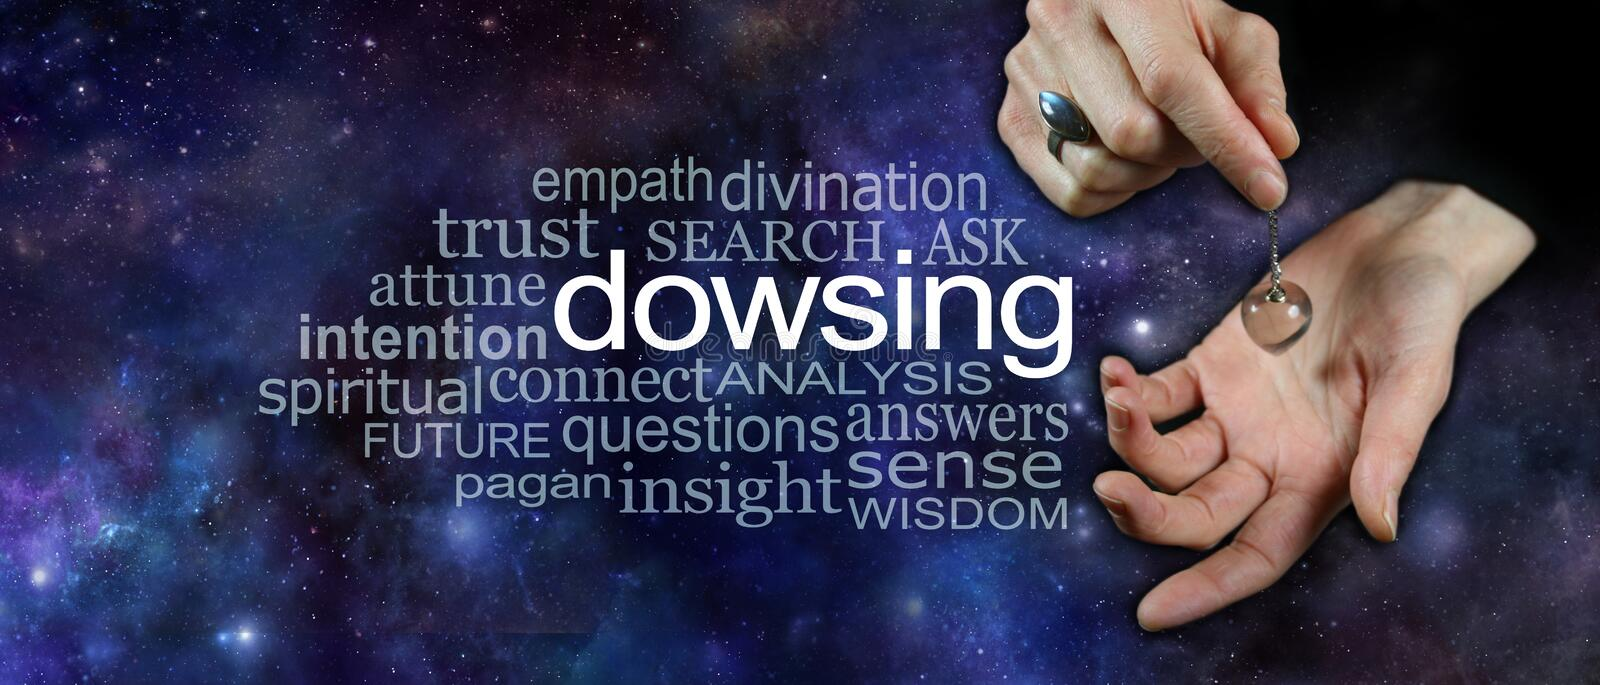 Dowsing with a crystal pendulum word cloud banner. Female hand holding a clear quartz crystal dowsing pendulum over hand on a wide cosmic dark night sky royalty free stock image